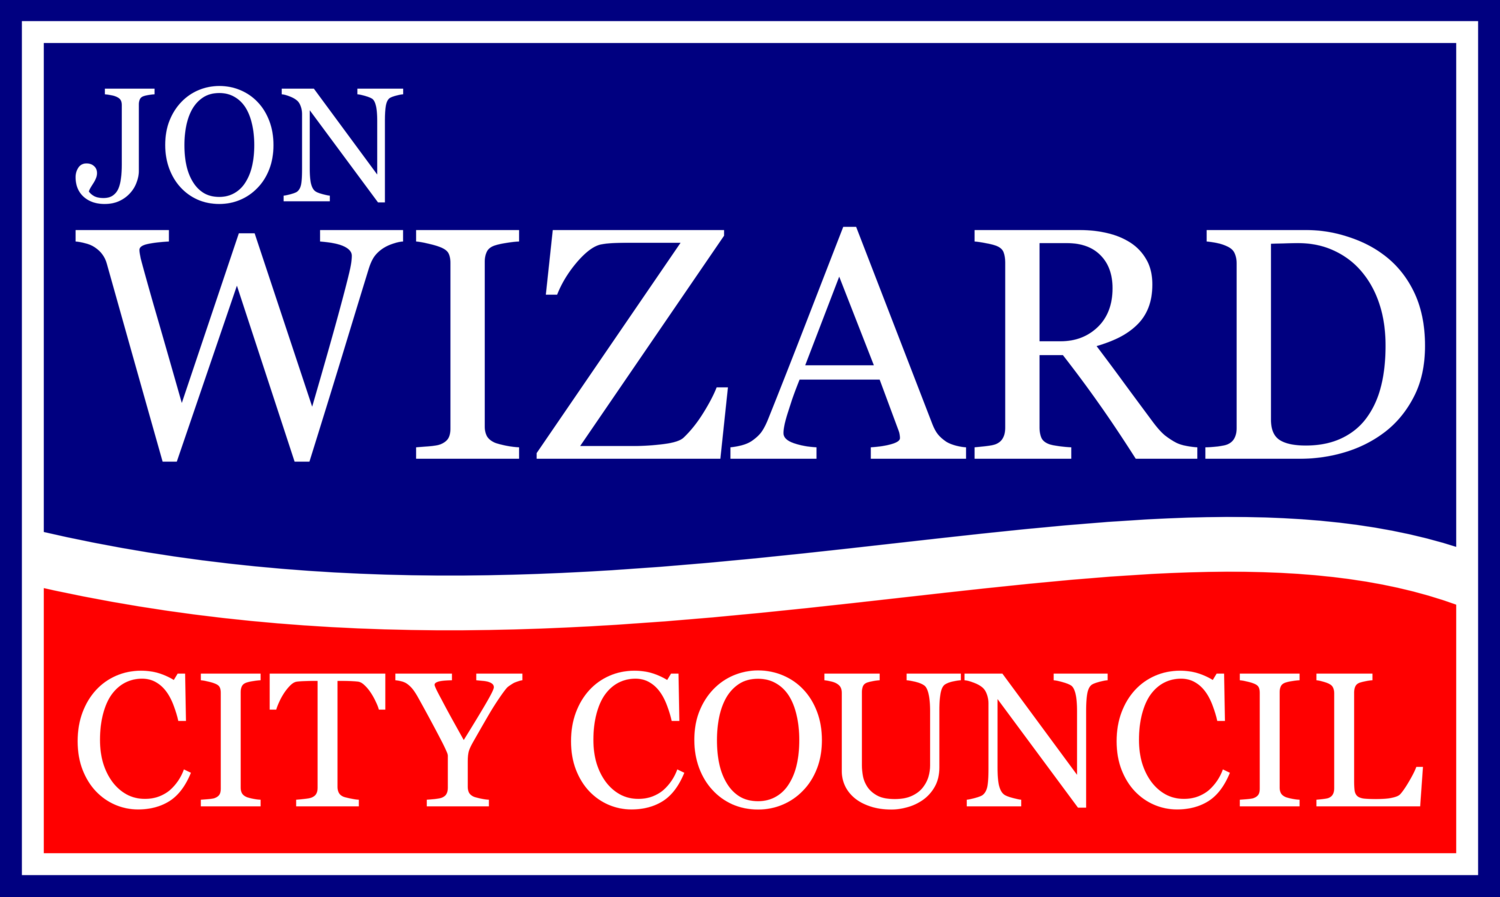 Jon Wizard for City Council 2018